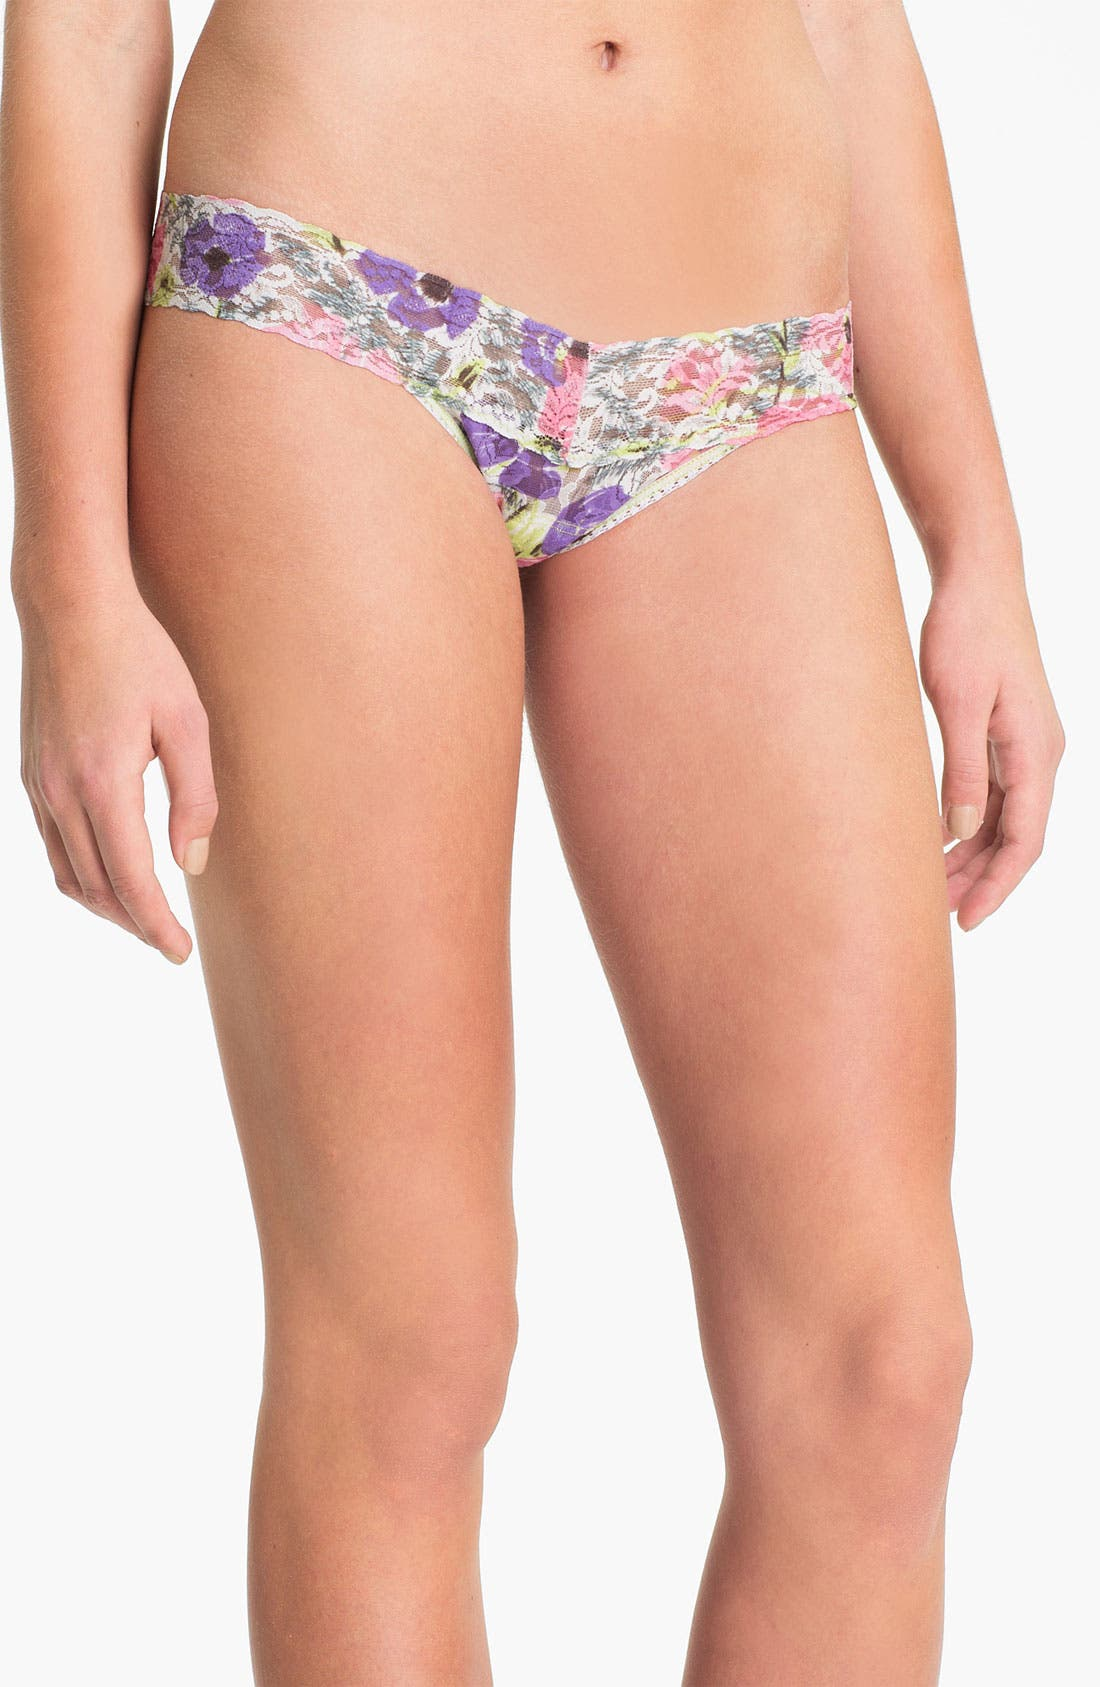 Main Image - Hanky Panky 'Poppies' Low Rise Thong